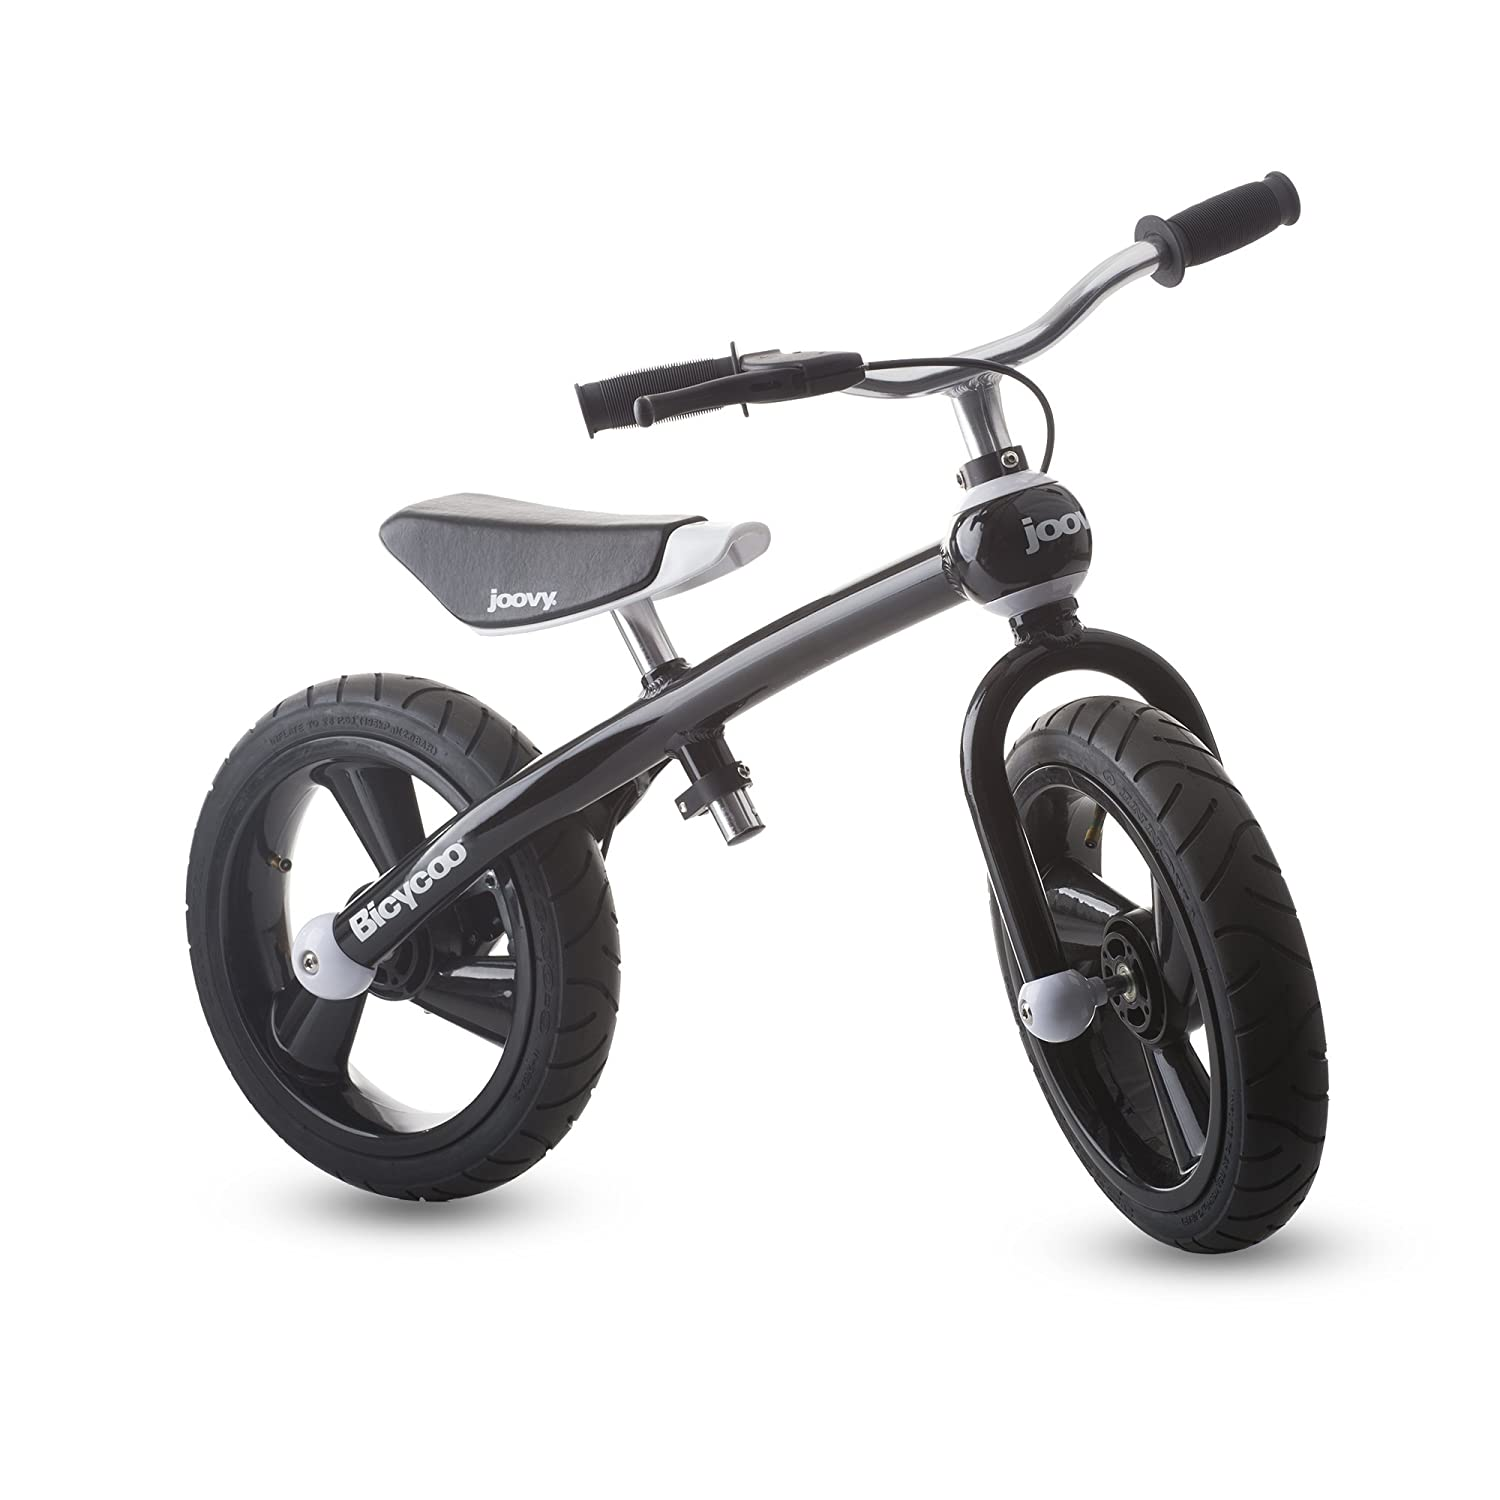 Joovy 157 Bicycoo Balance Bike, Black ISSI Inc